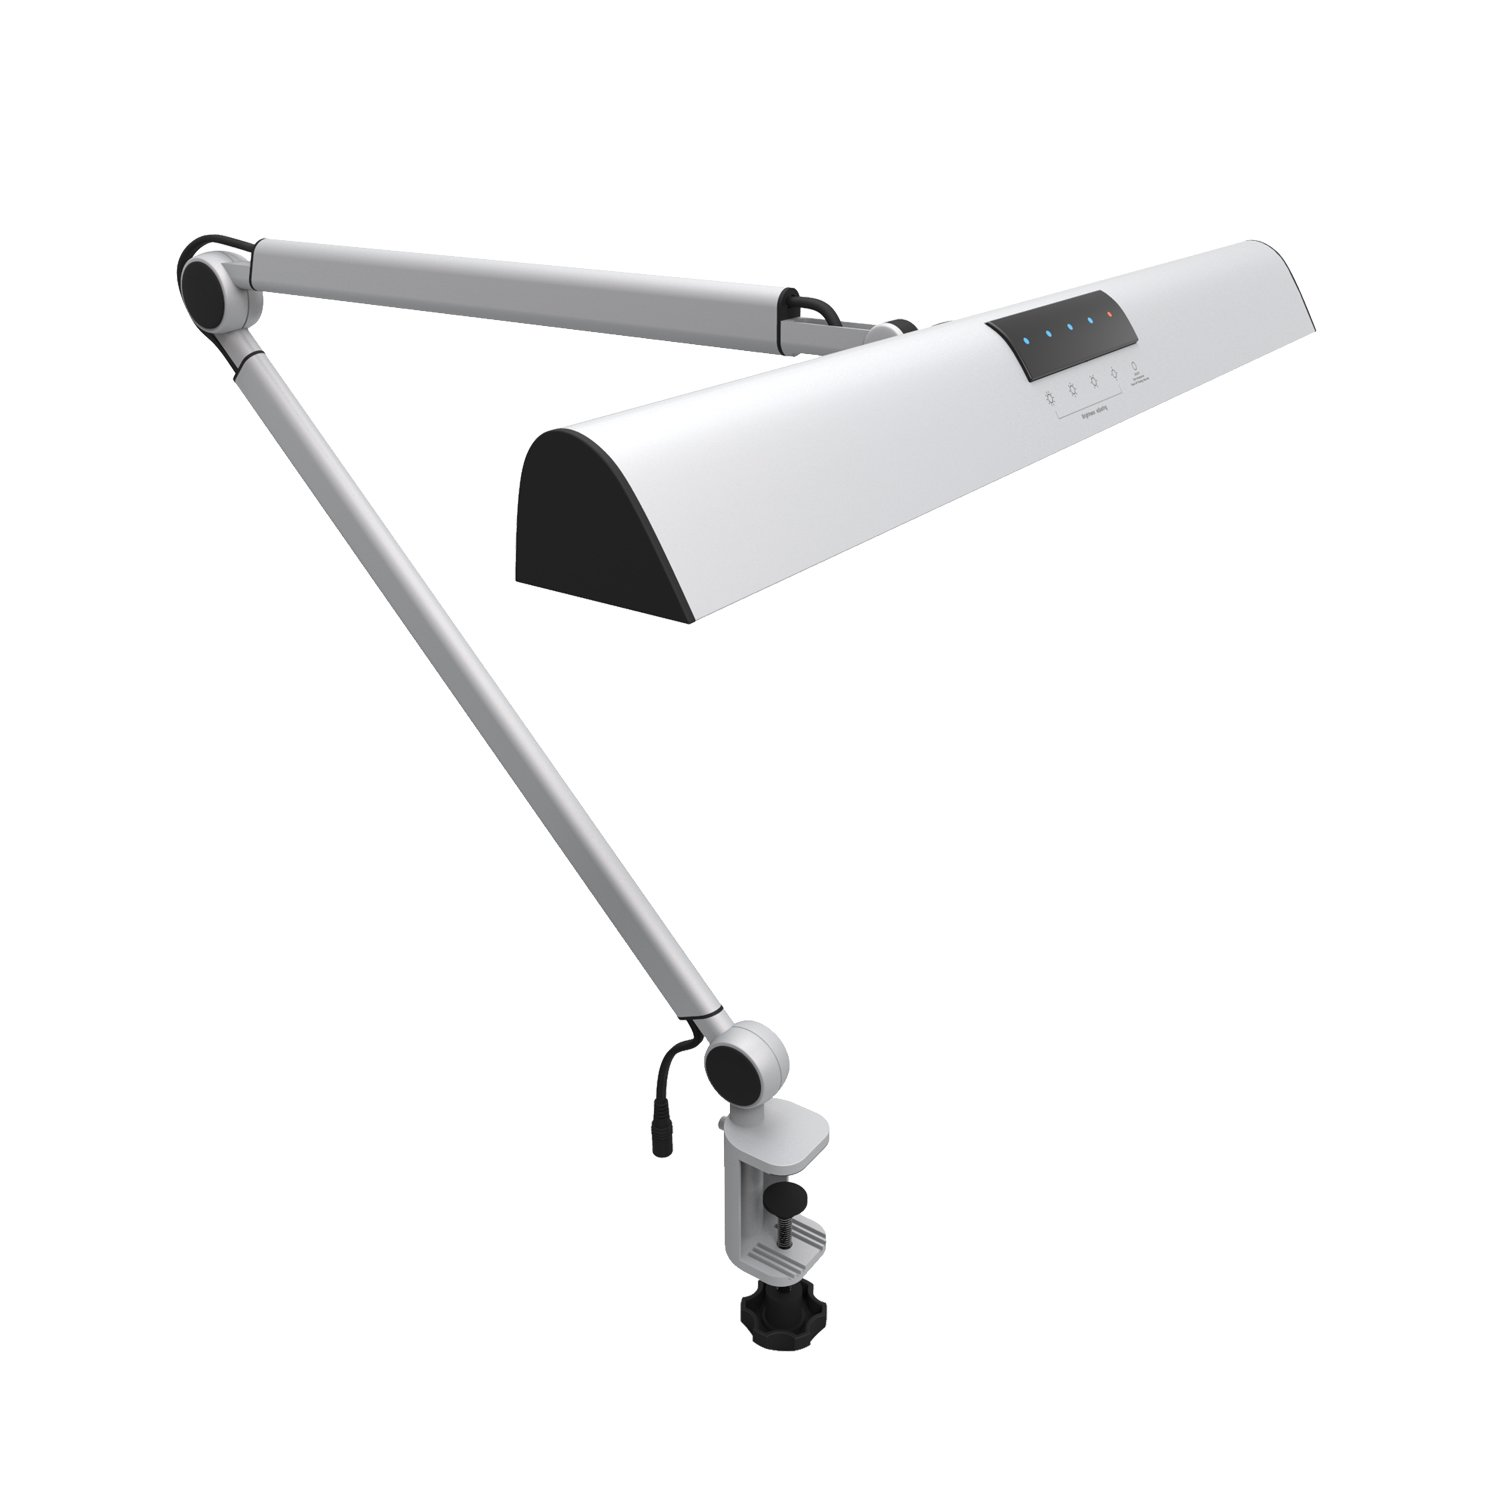 YOUKOYI A509 LED Swing Arm Architect Desk Lamp Clamp, Drafting Table Lamp for Reading/ Working Silver(2 Lighting Modes, 4-level Dimmable, Eye Caring, Touch Control)